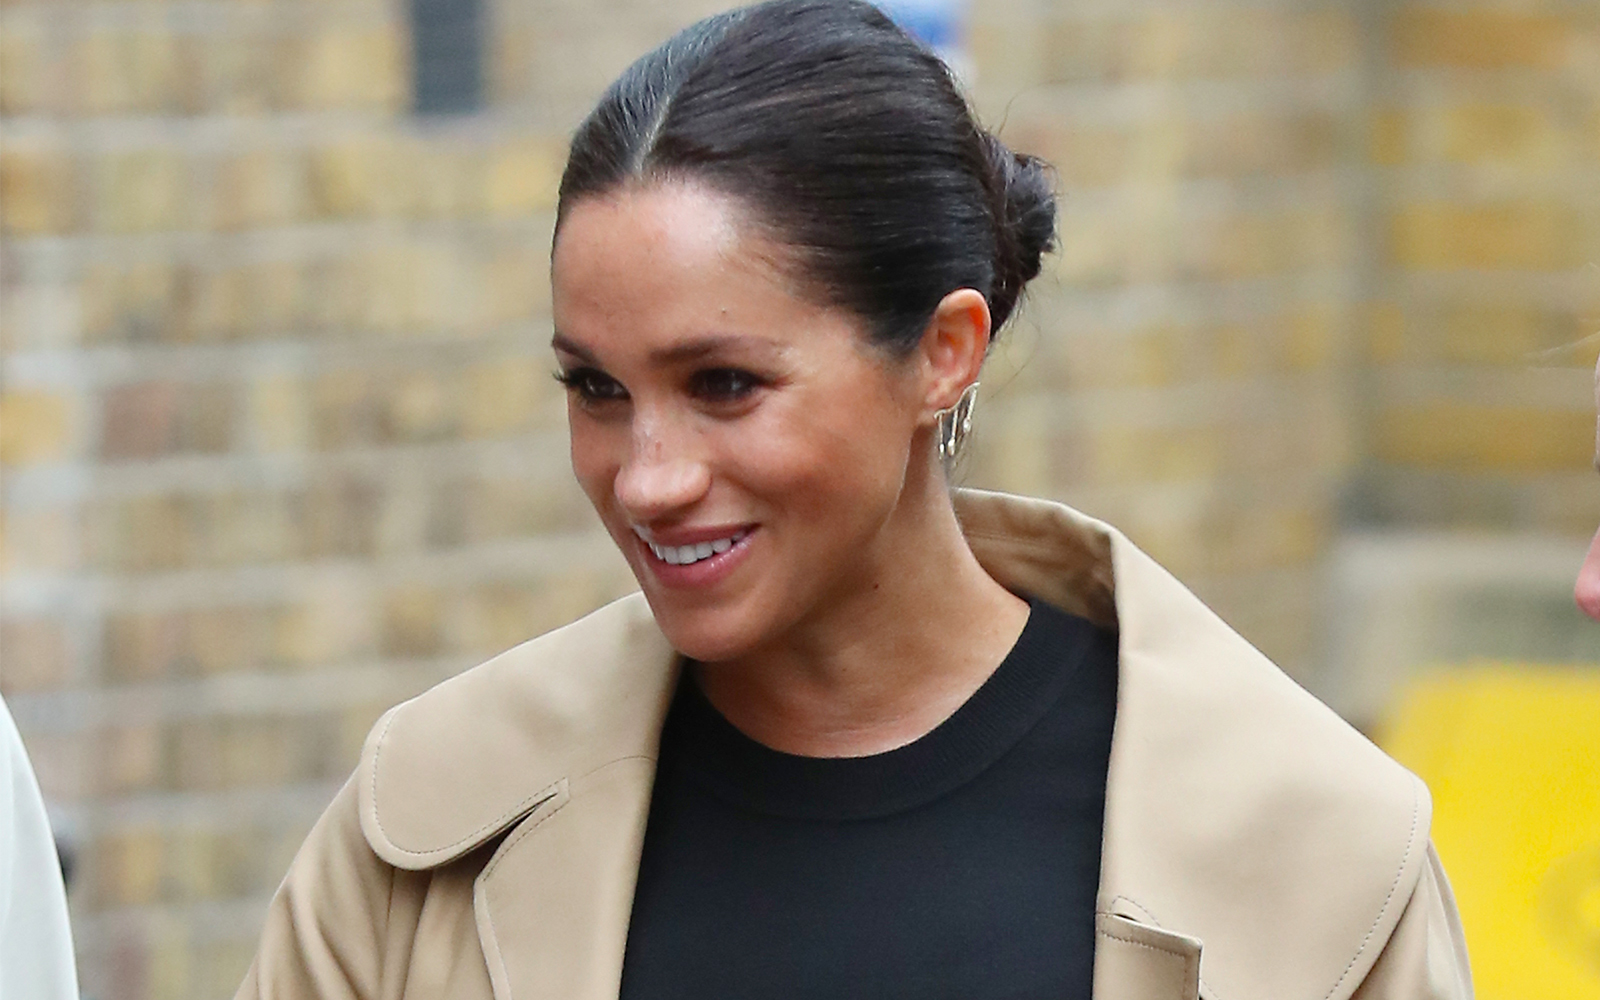 Meghan Markle's Go-to Maternity Fashion Brand Is Now Available at Nordstrom